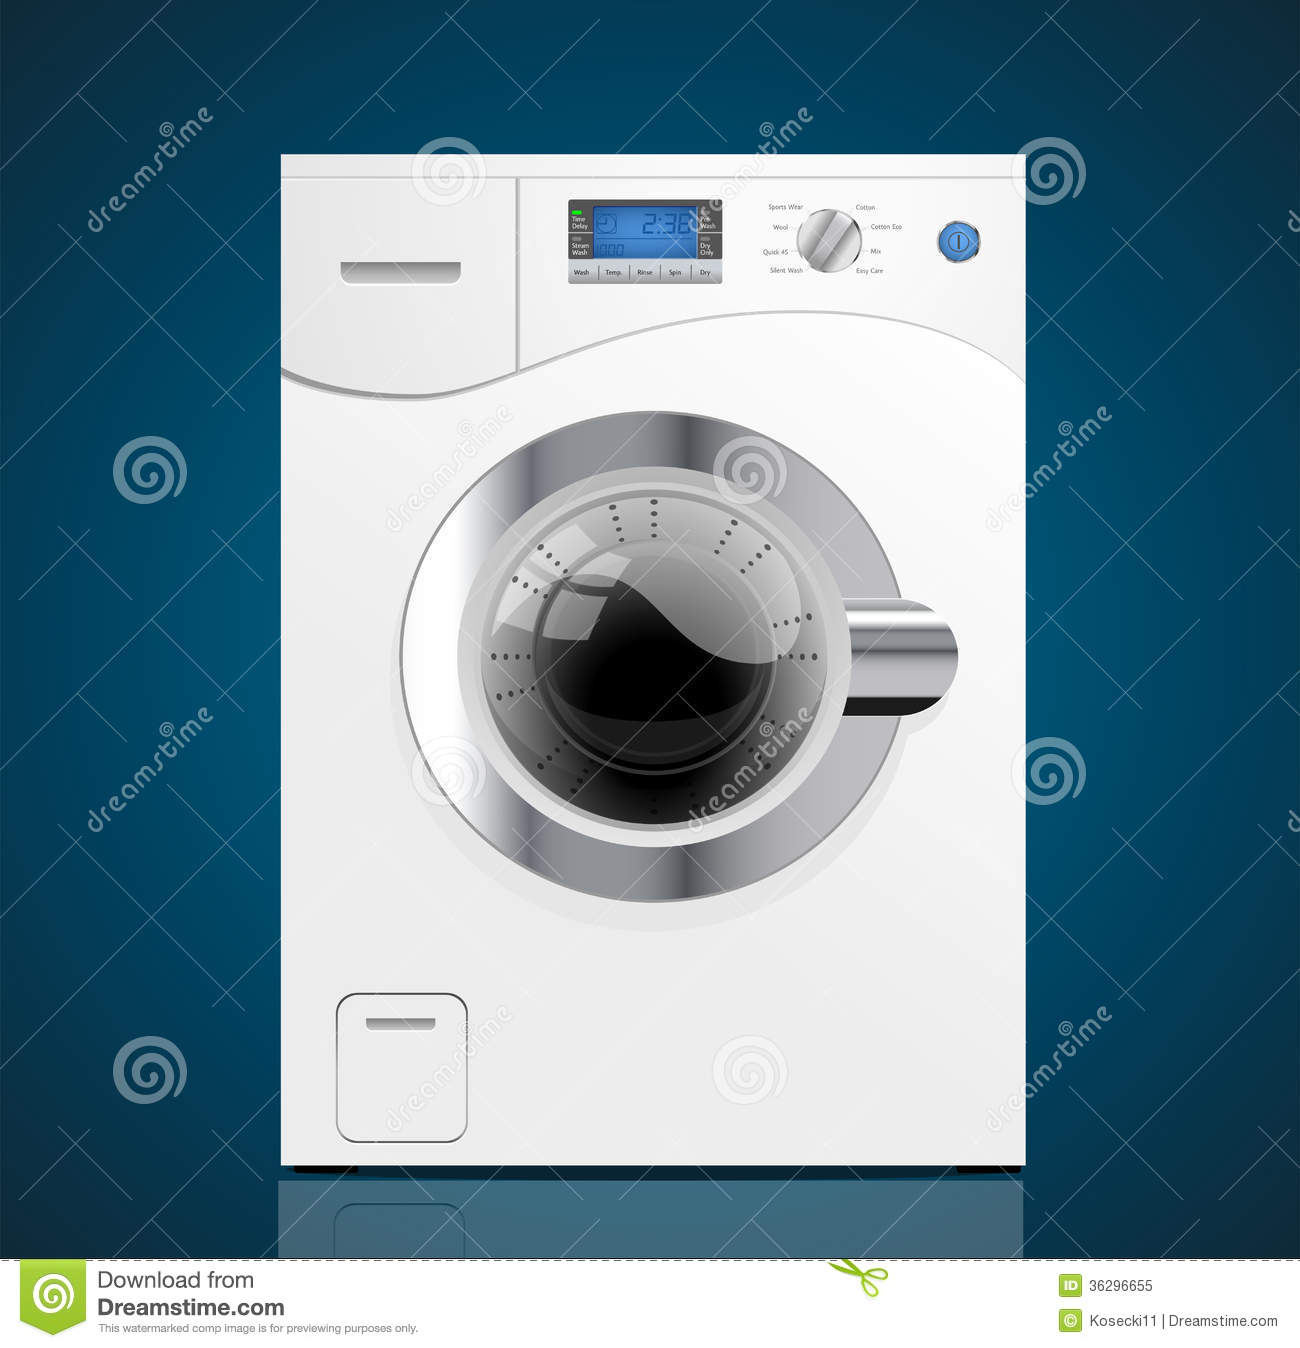 Kitchen Washing Machine ~ Kitchen washing machine royalty free stock photo image